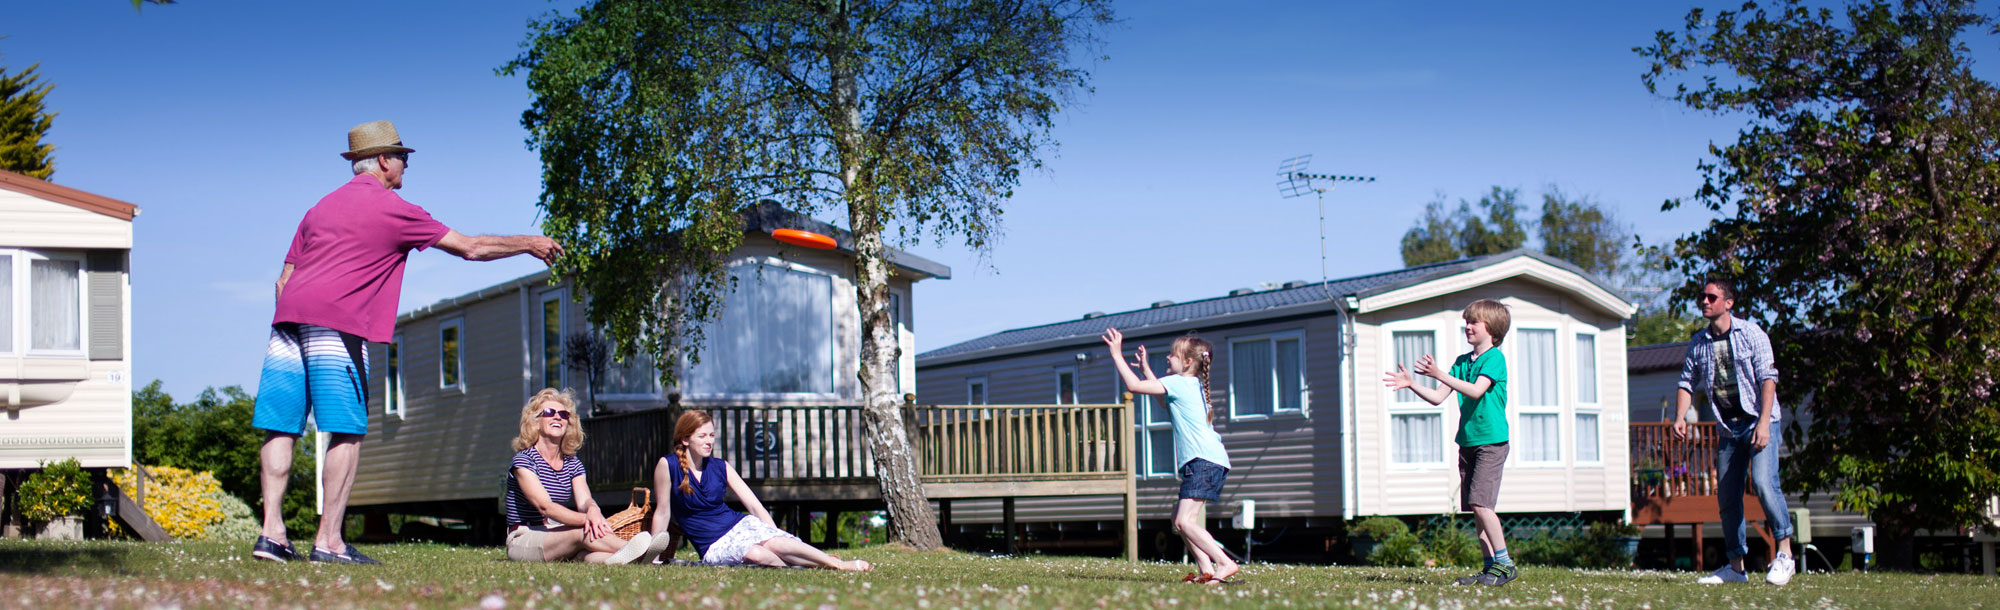 Holidays in Essex - Holiday park